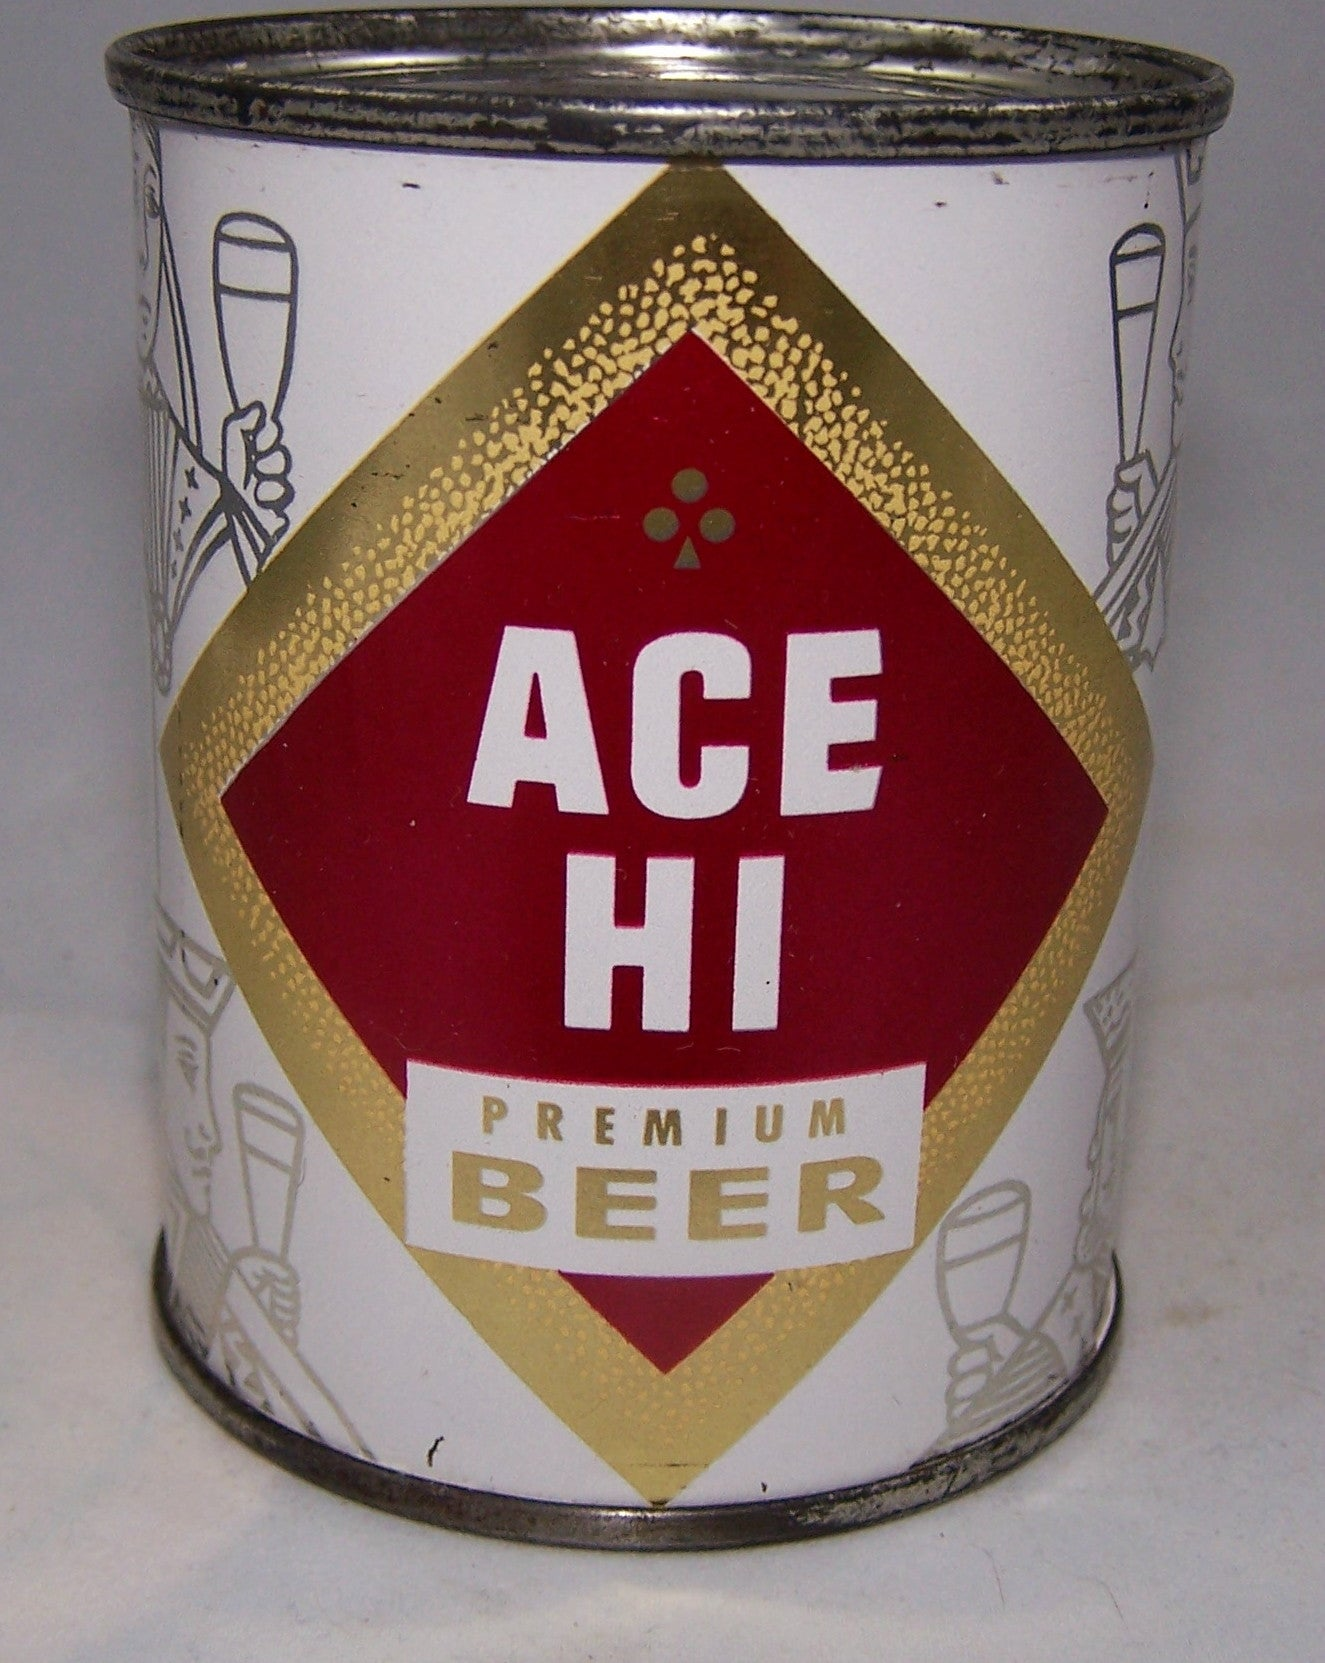 Ace Hi Premium Beer 8 ounces, USBC 239-03, Grade 1 to 1/1+ Sold on 01/21/17